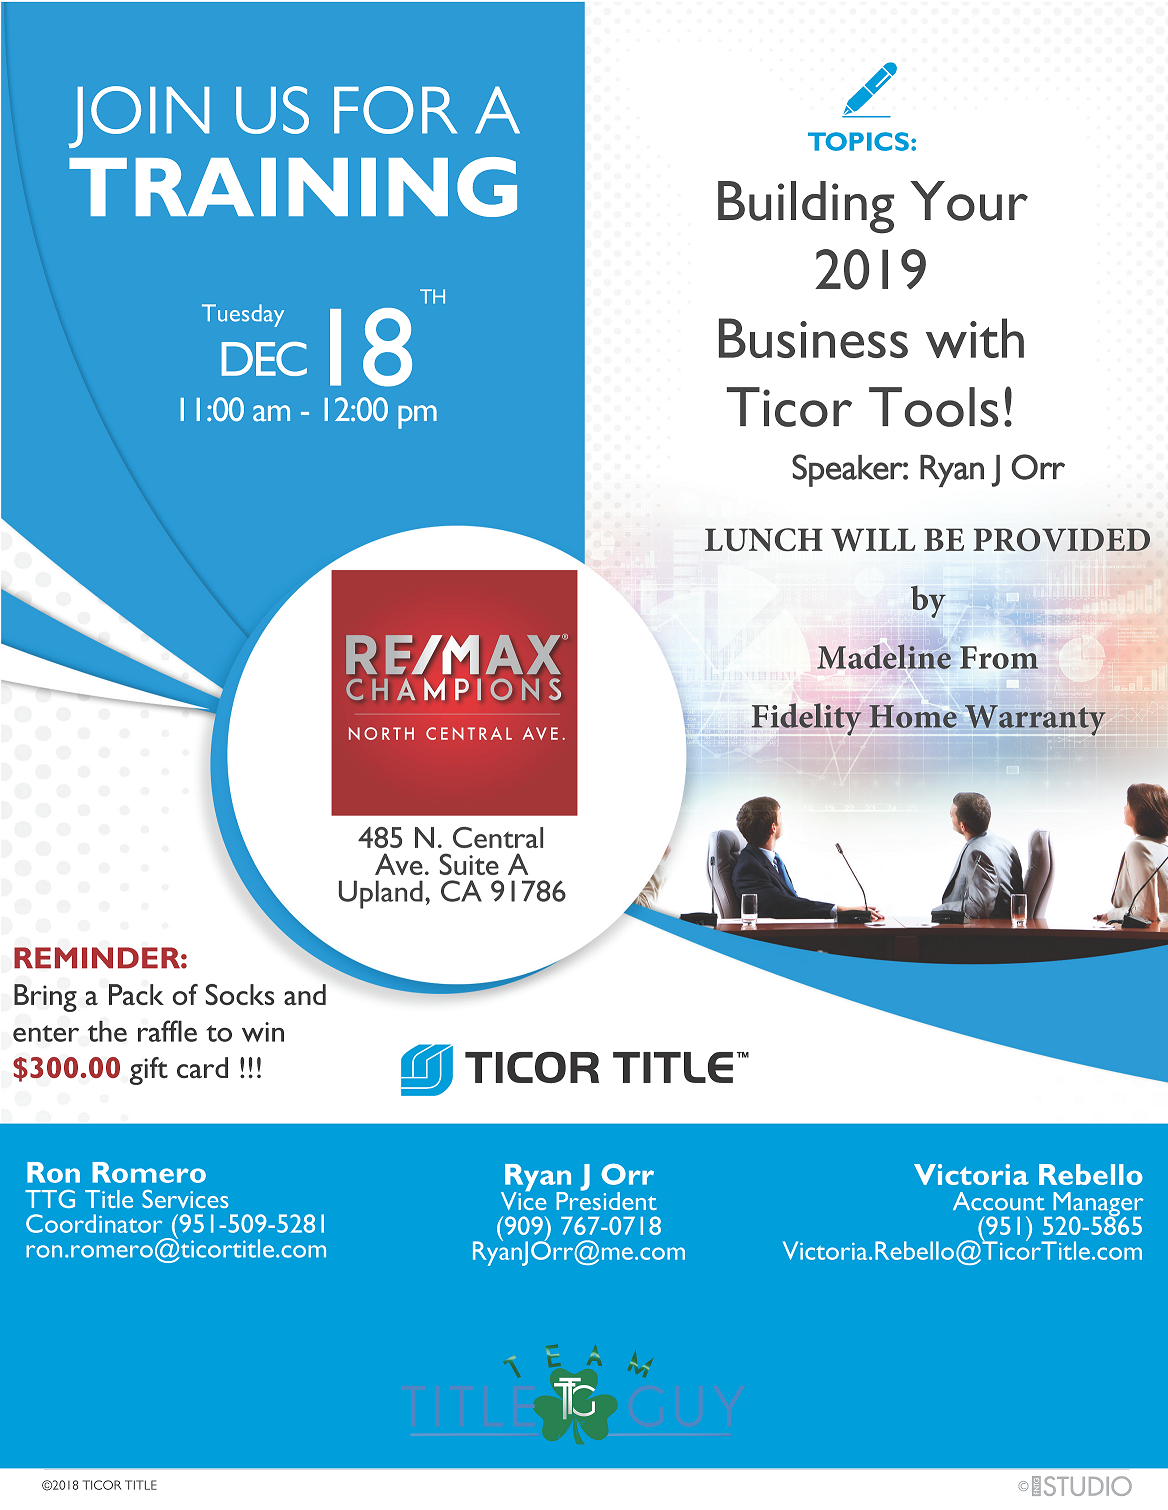 Building Your 2019 Business with Ticor Tools